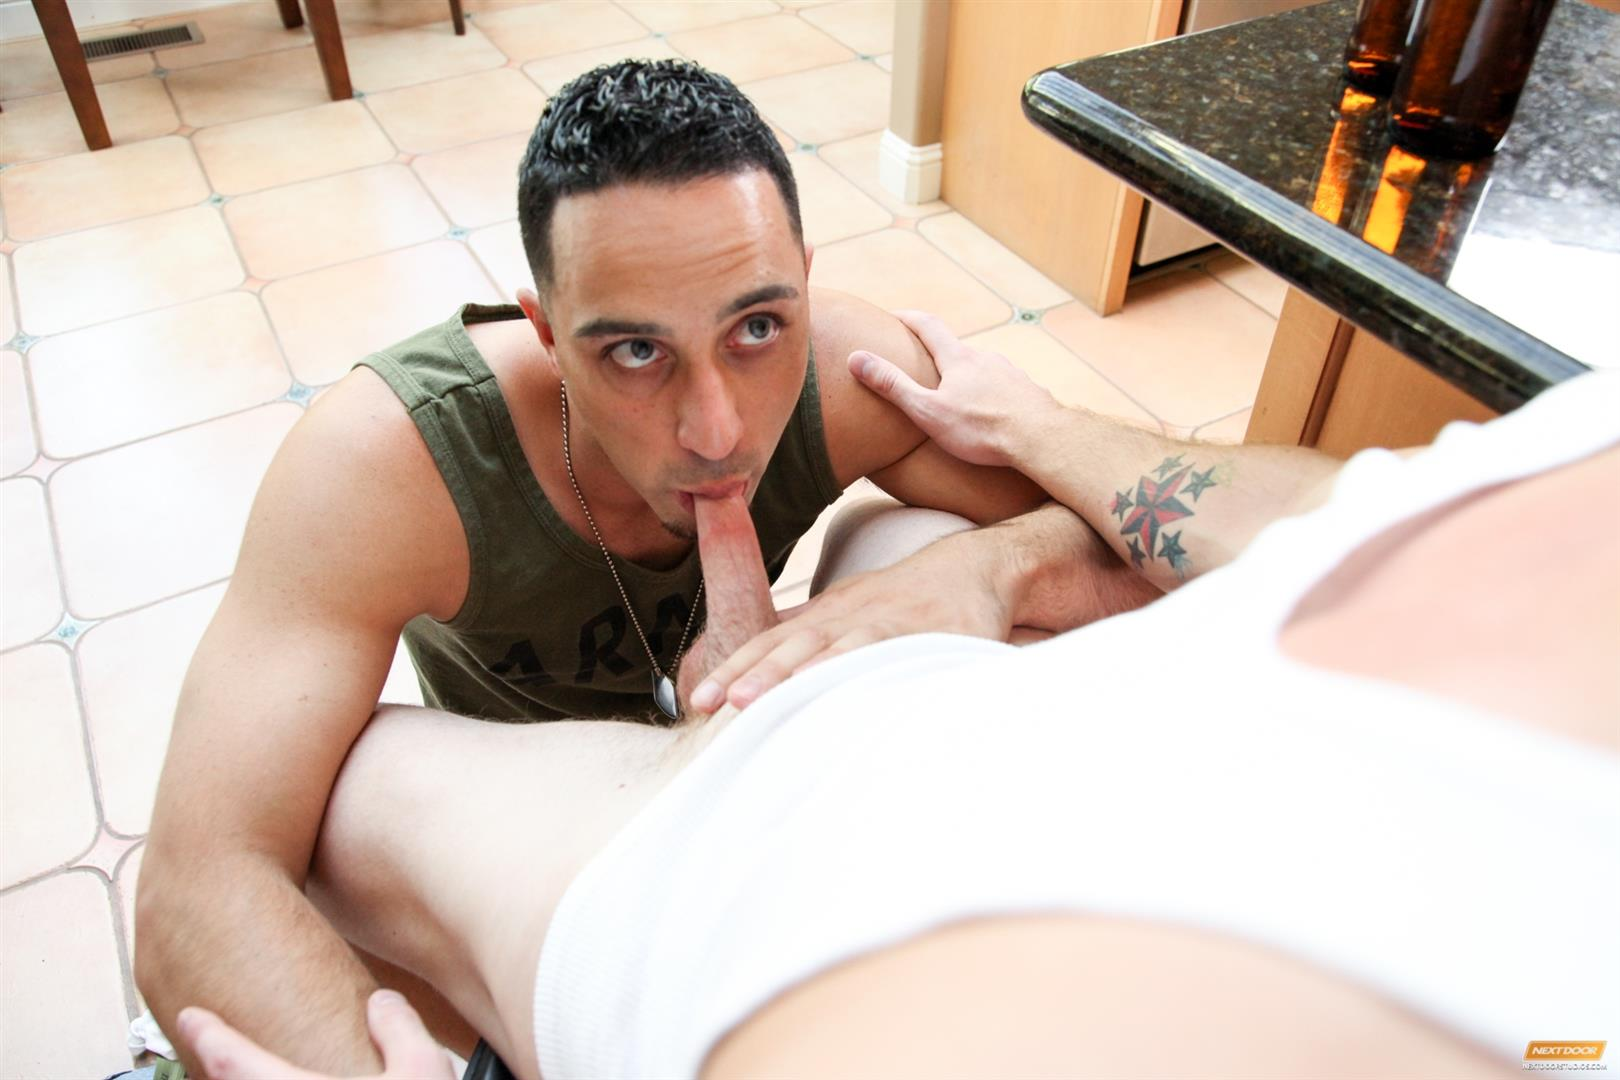 Next Door Buddy Andrew Fitch and Sean Blue Military Army Guy With A Big Cock Fucking Amateur Gay Porn 12 Hung Army Guy Returning From Duty Fucking His Buddy Hard